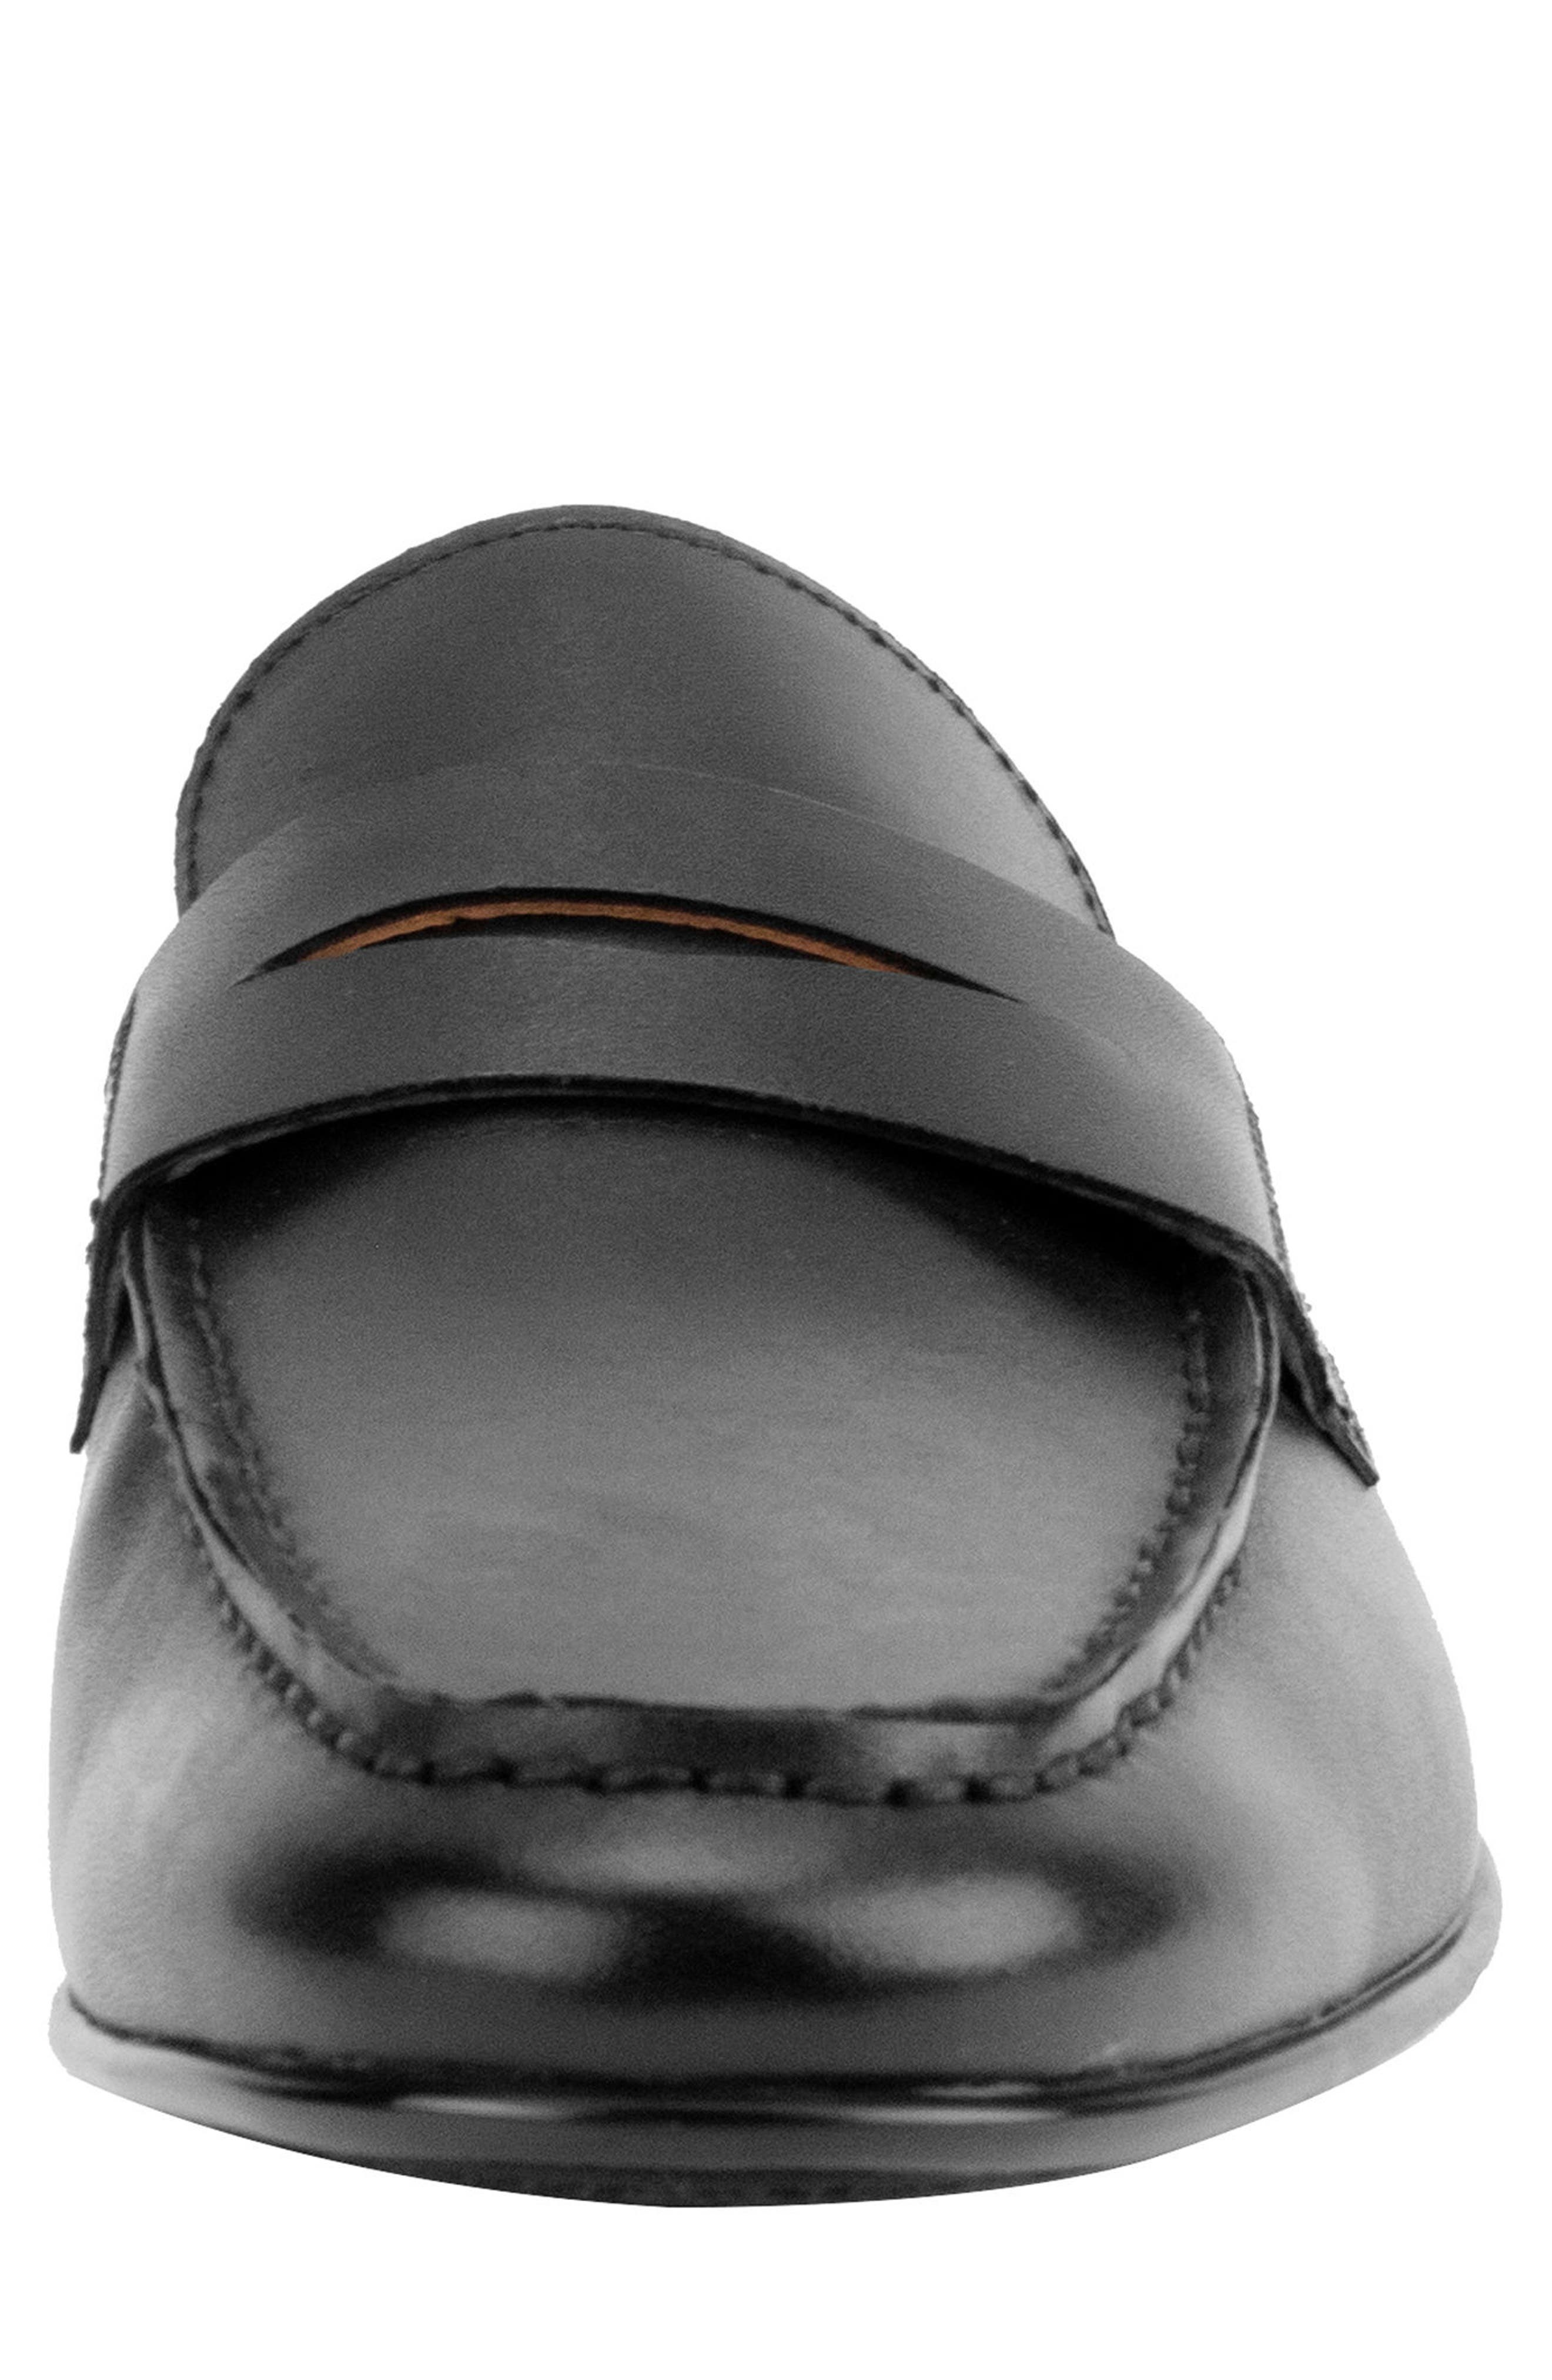 Connery Penny Loafer,                             Alternate thumbnail 4, color,                             BLACK LEATHER